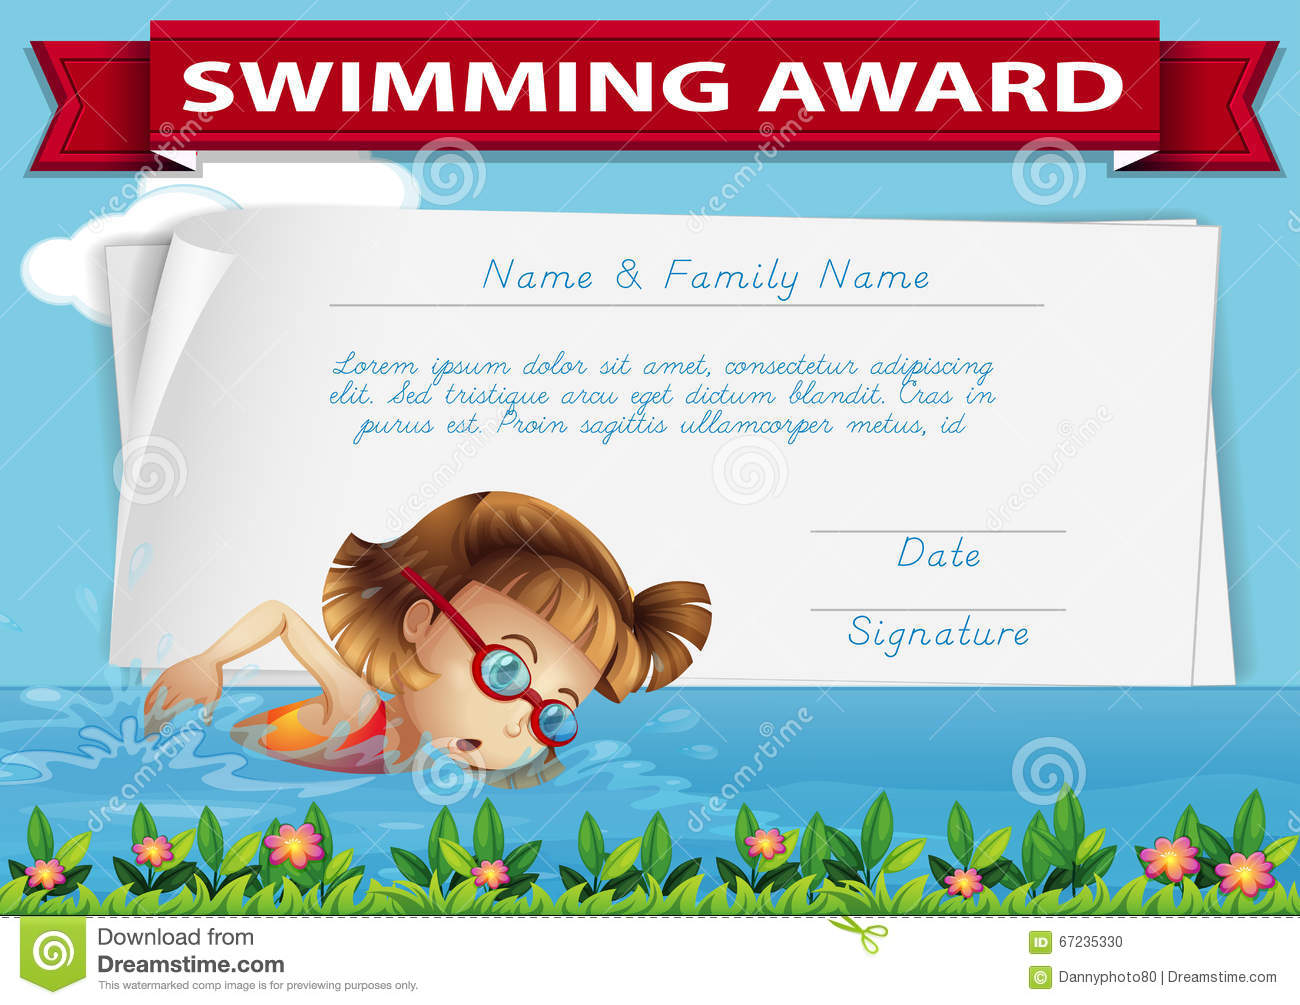 Swimming Award Certificate Template Stock Illustration - Image ...